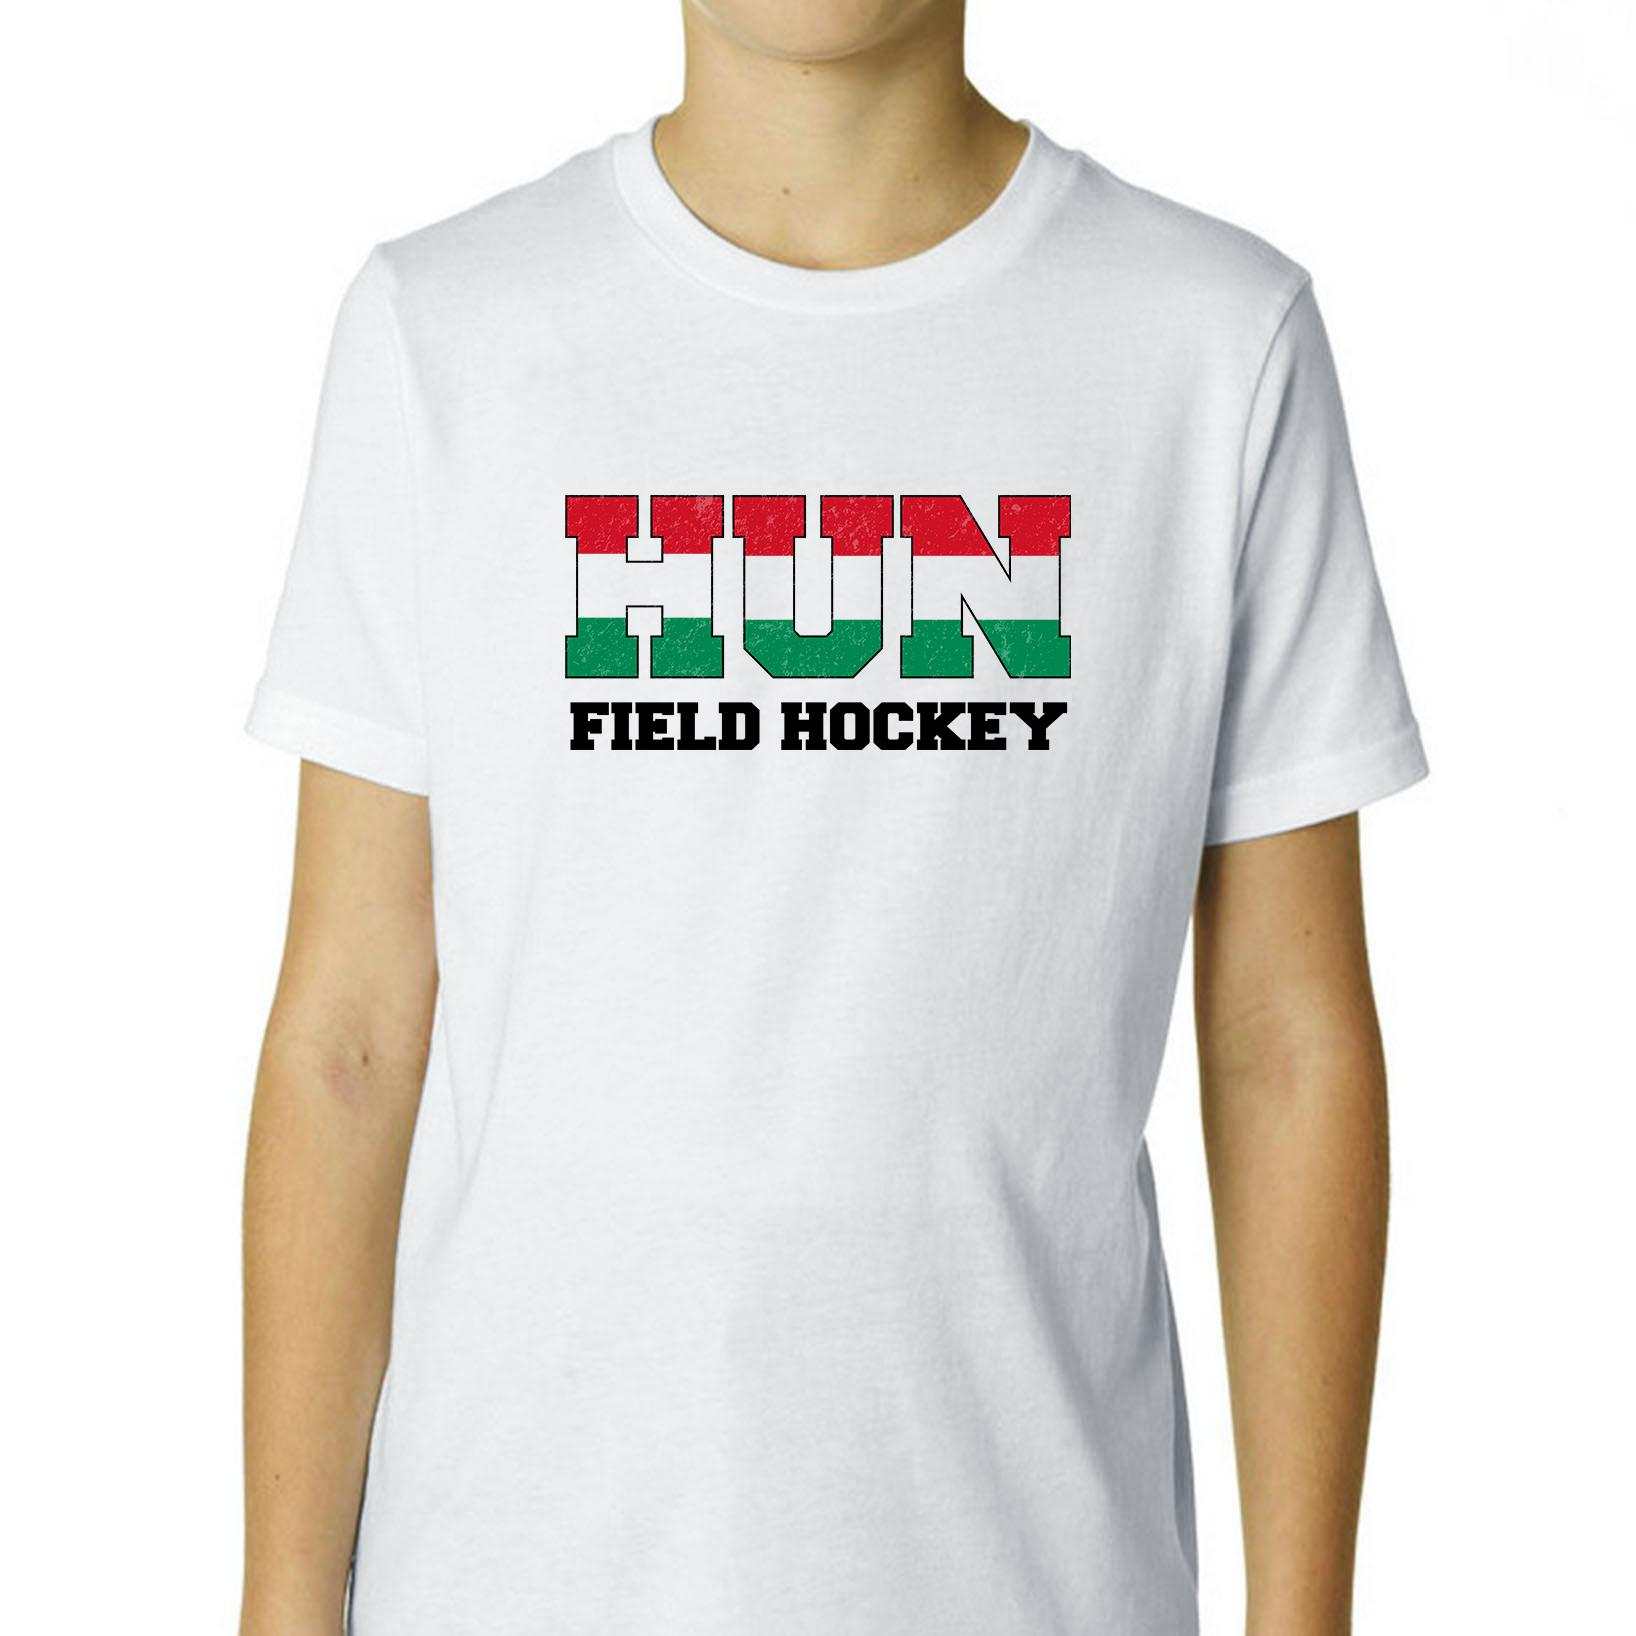 Hungary Field Hockey Olympic Games Rio Flag Boy's Cotton Youth T-Shirt by Hollywood Thread